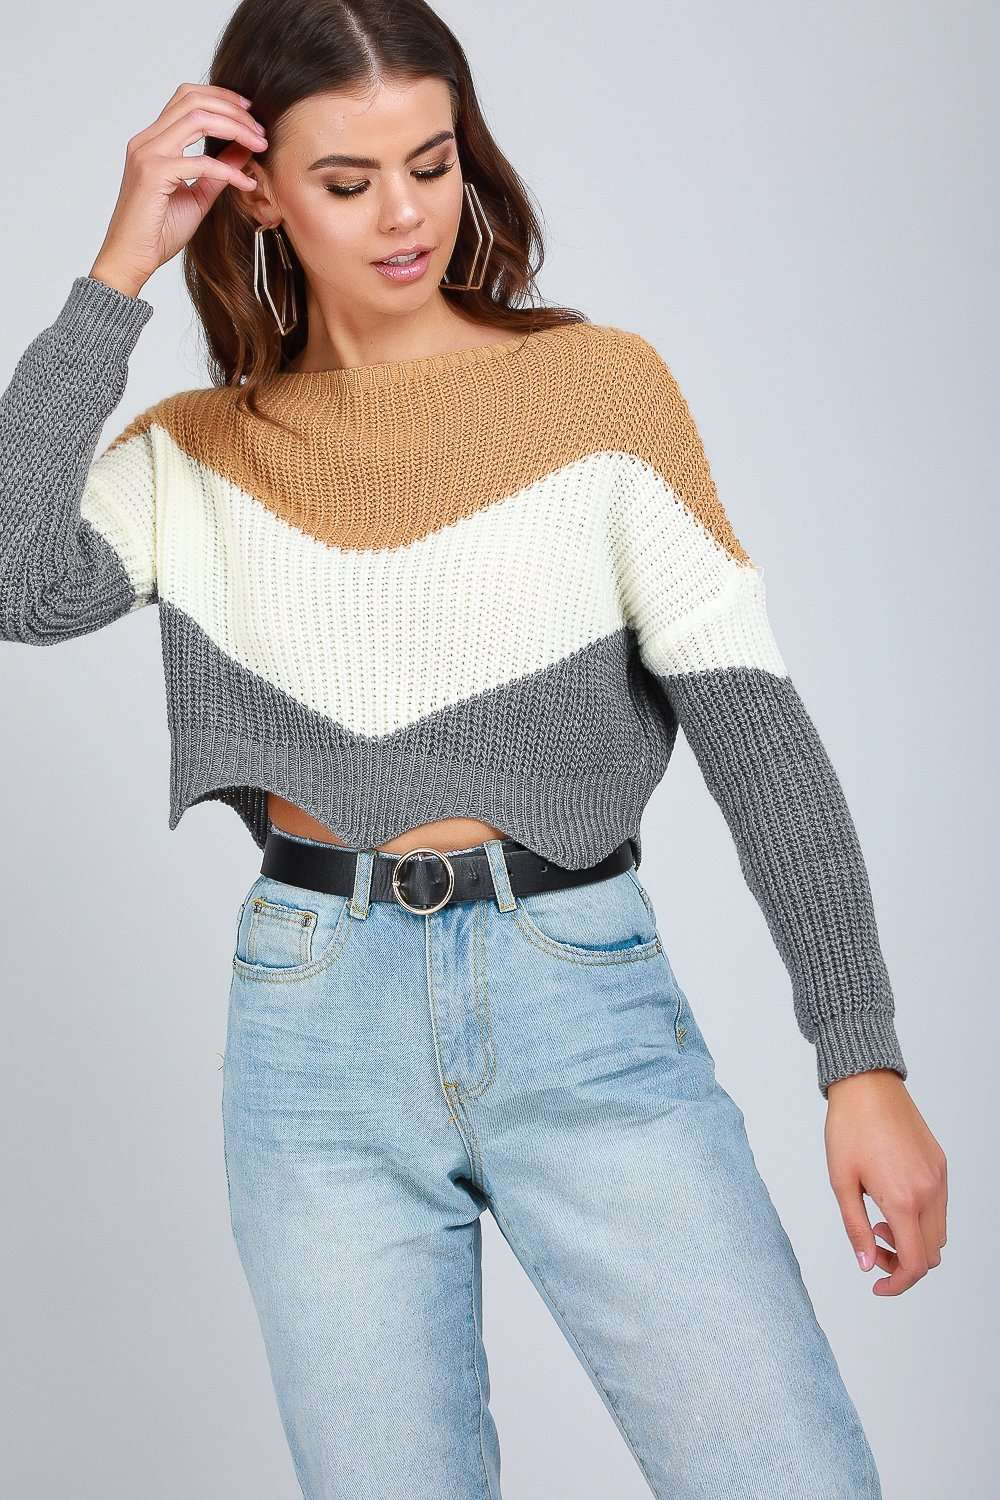 Zara Striped Scallop Hem Cropped Knitted Jumper - bejealous-com